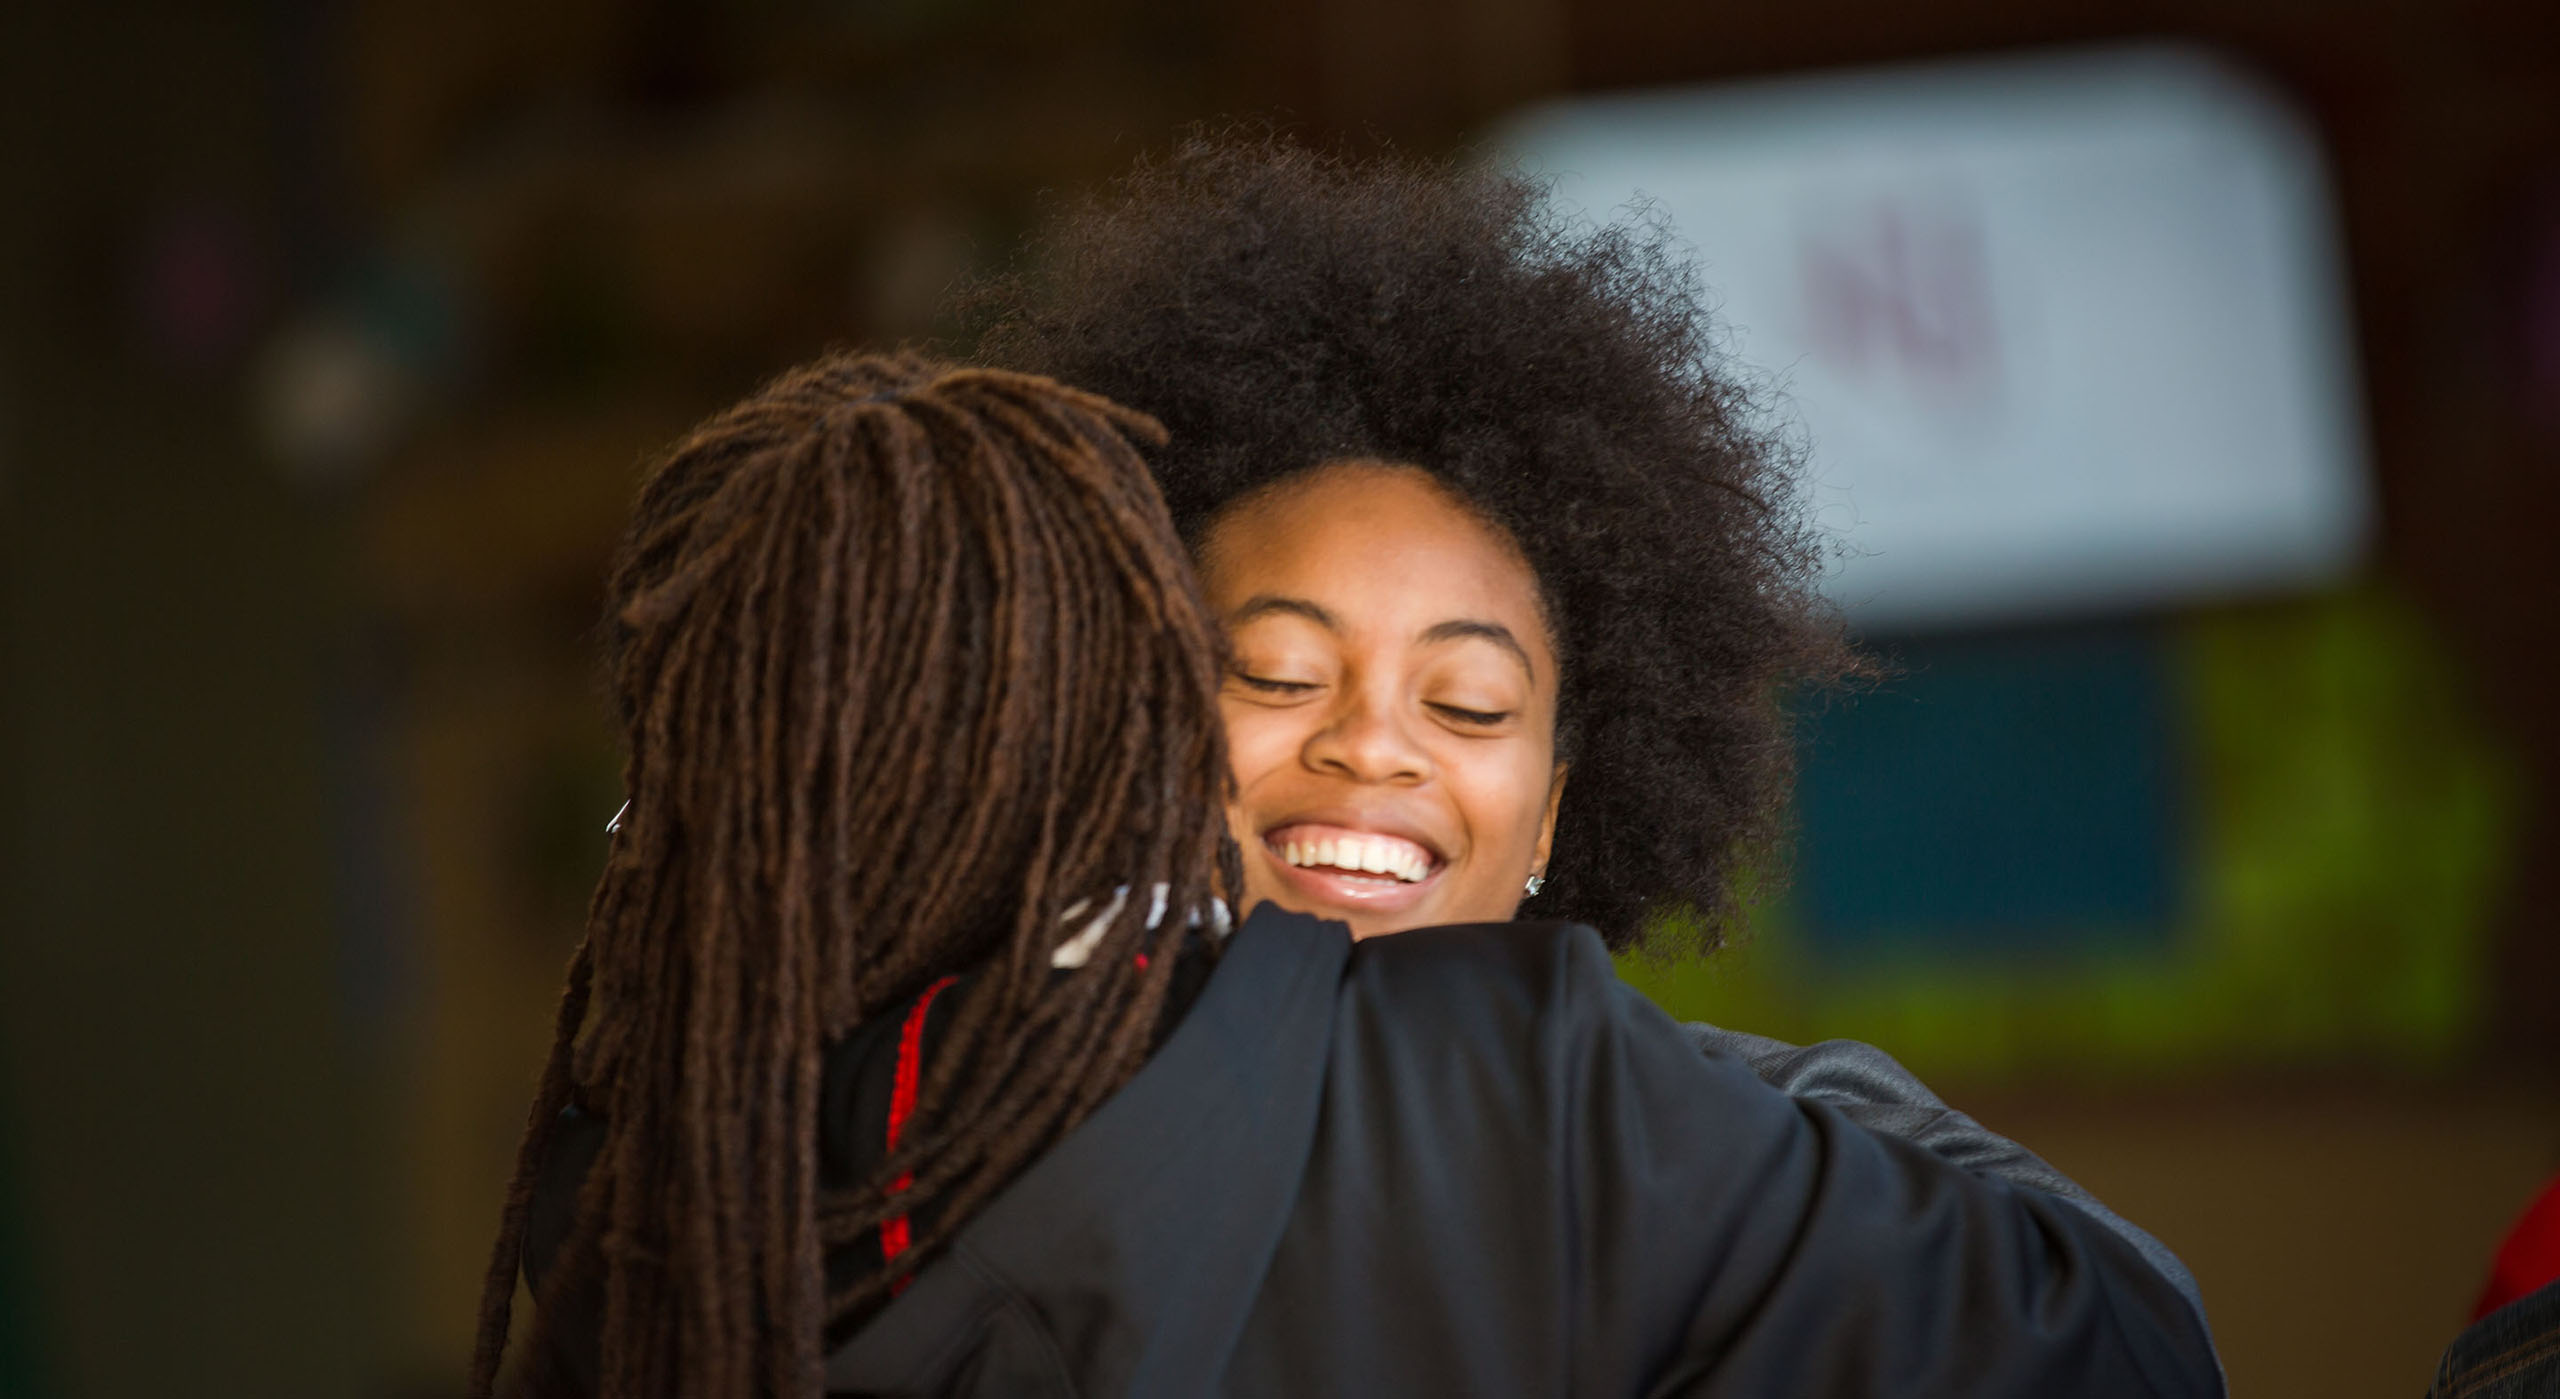 Two Holy Names University students hugging on graduation day